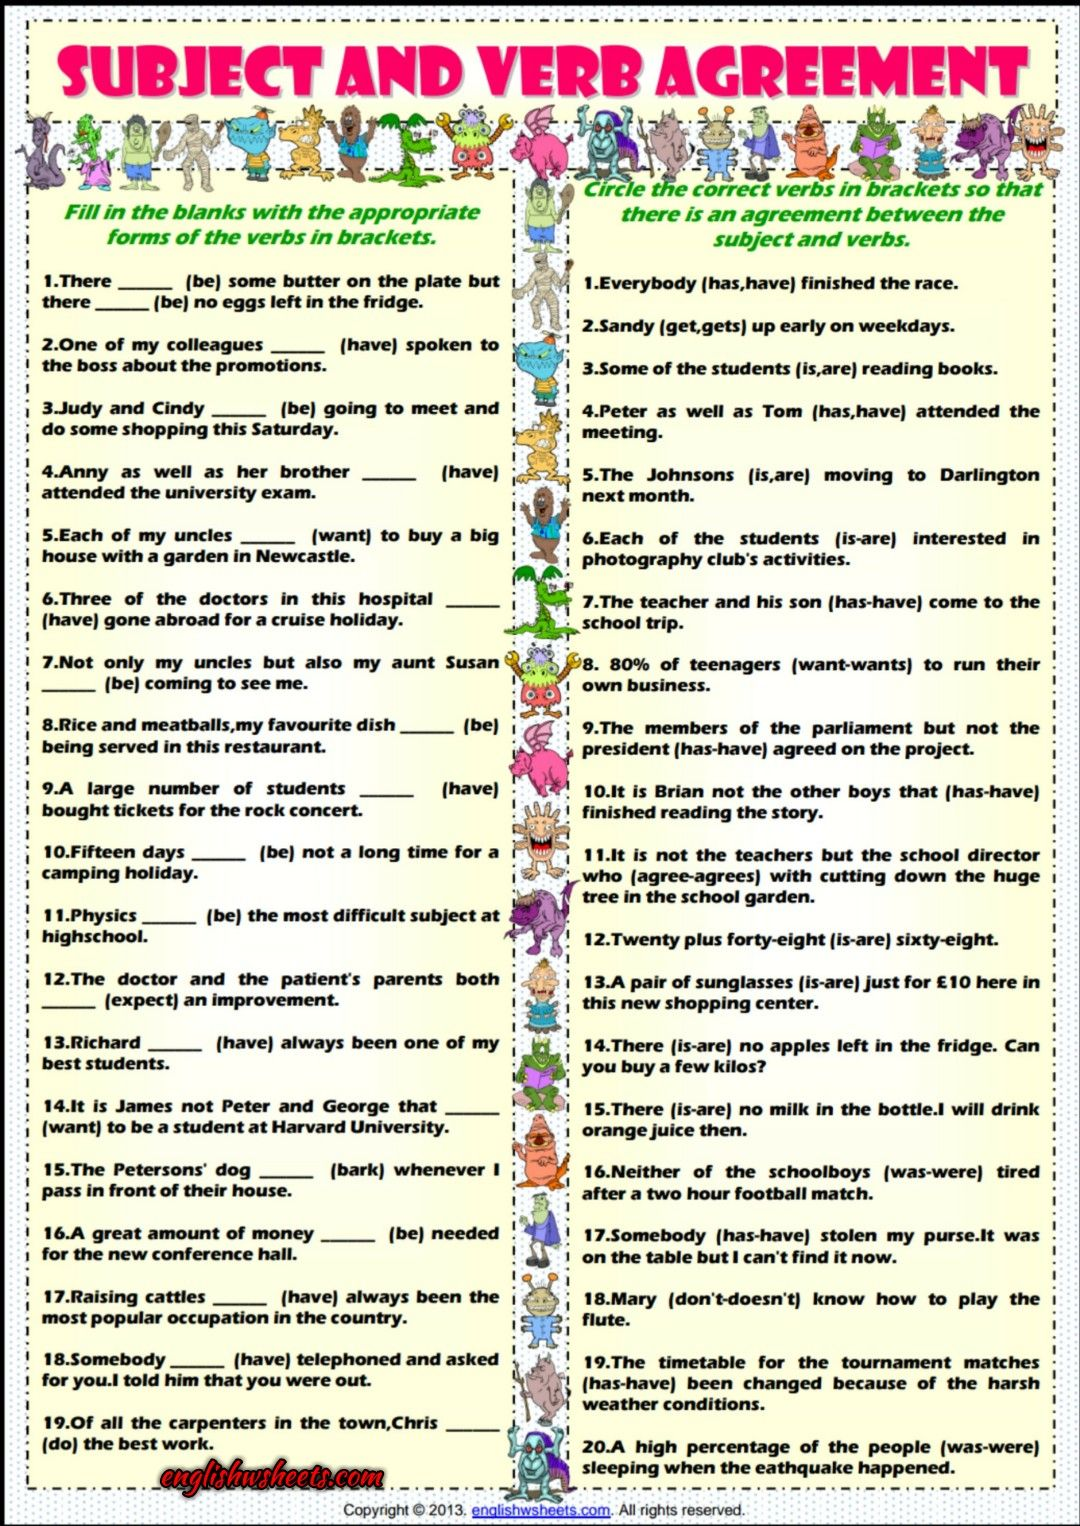 Subject And Verb Agreement Grammar Exercises Worksheet